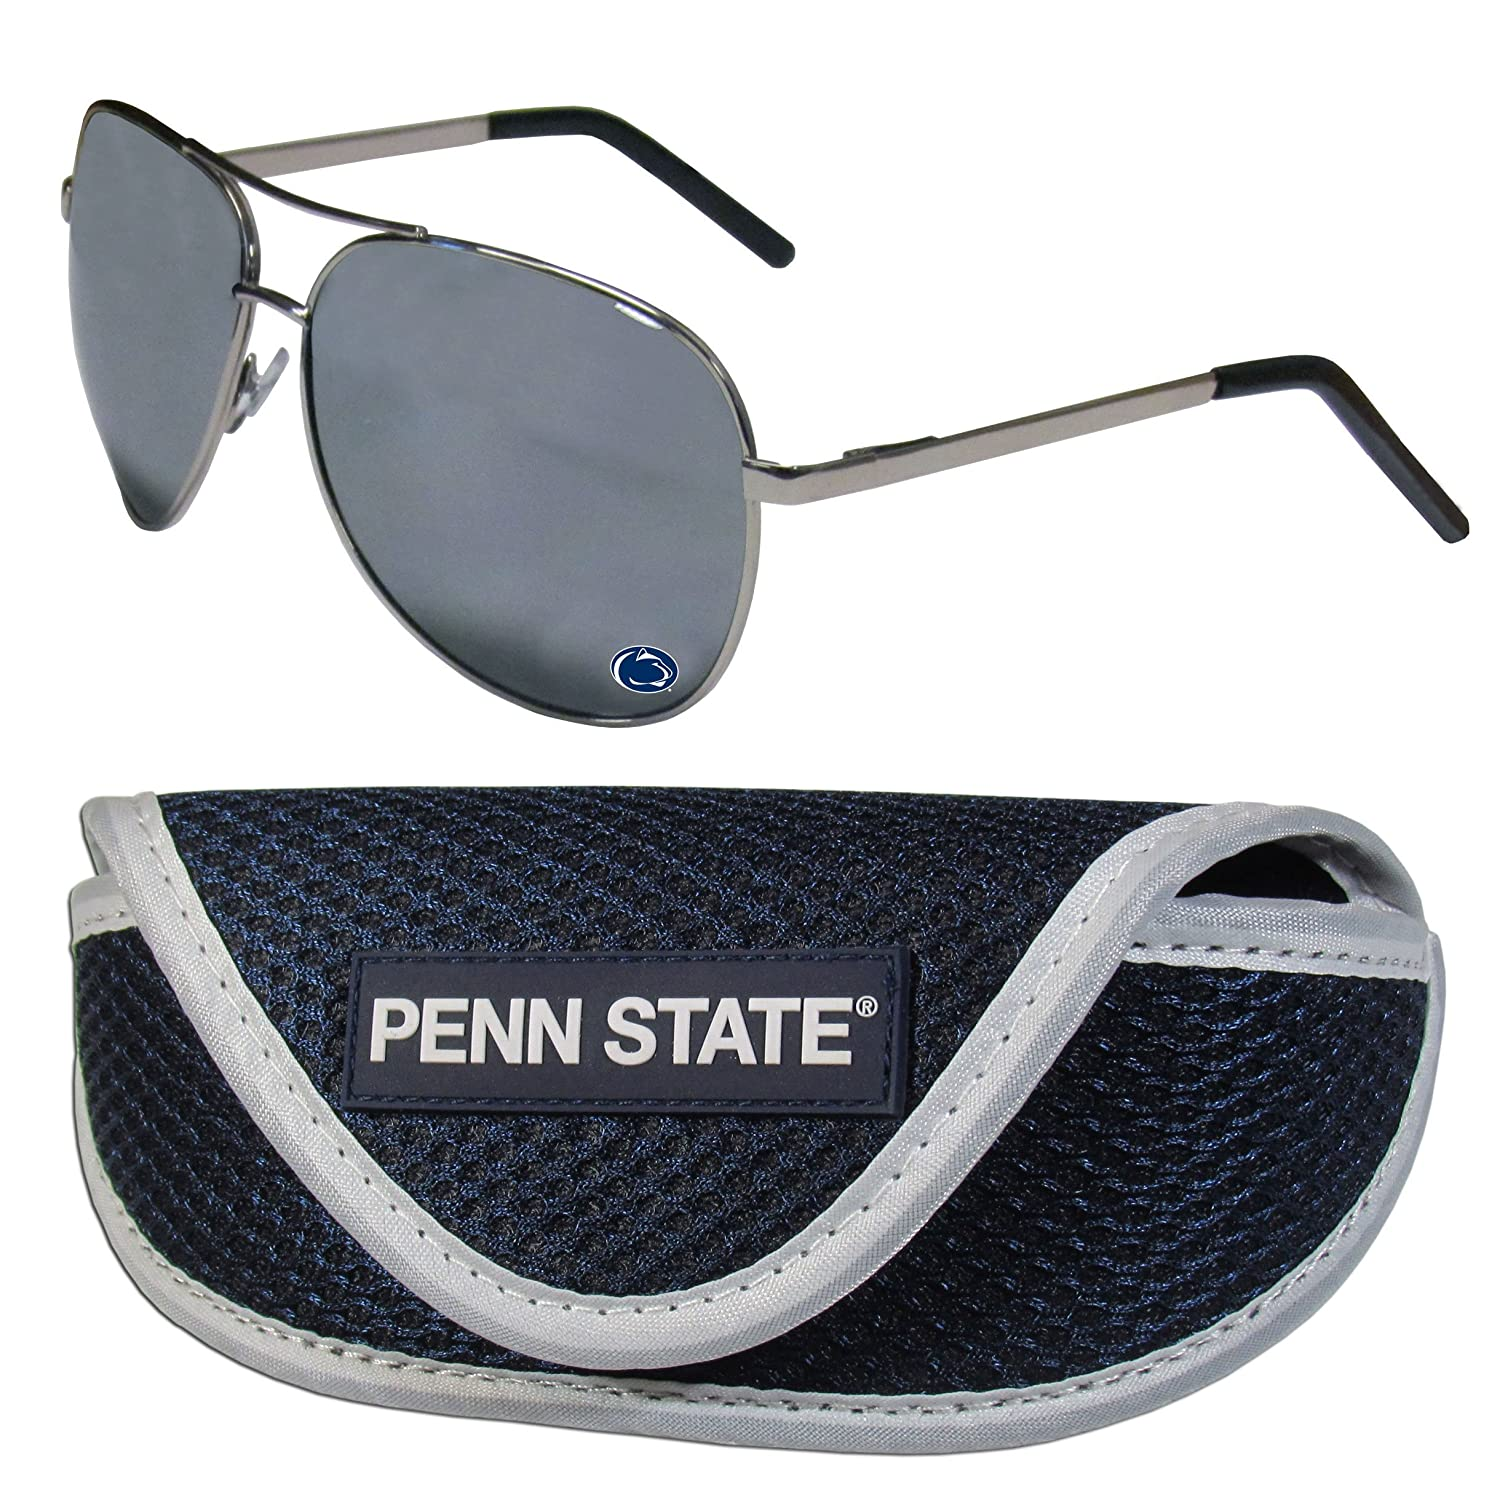 NCAA Penn State Nittany Lions Aviator Sunglasses /& Sports Case Silver